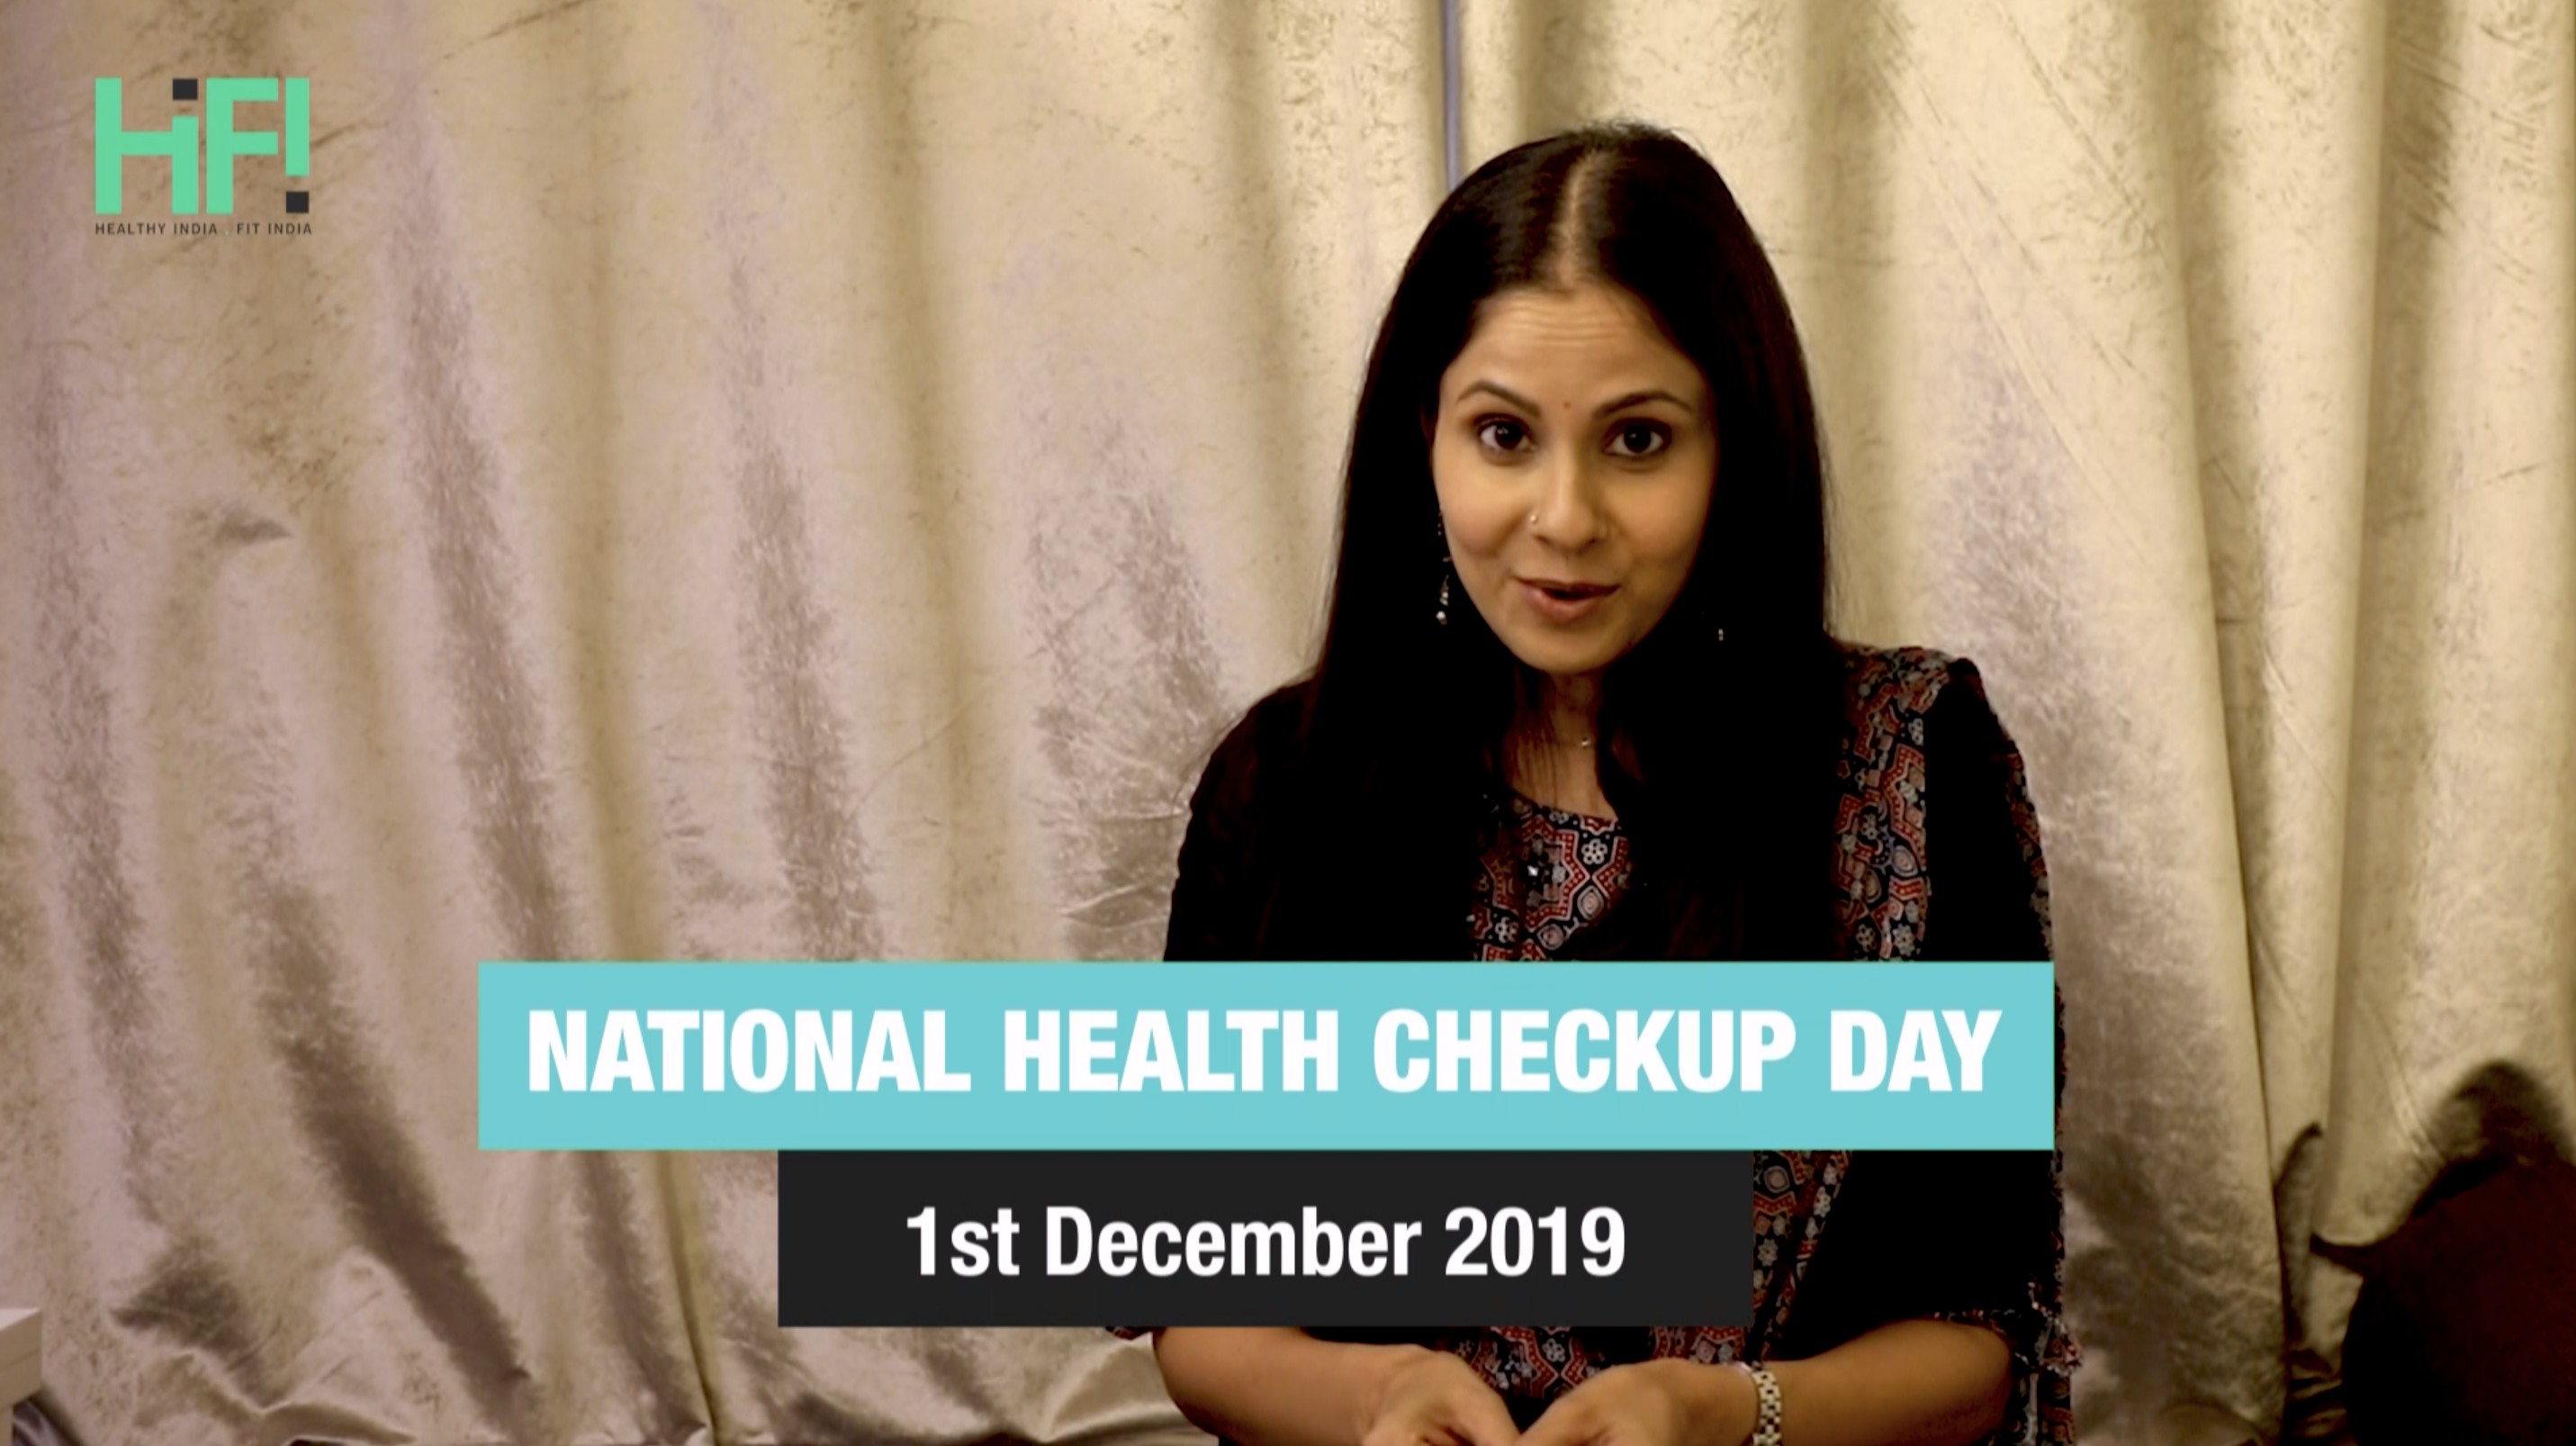 hi-fi-new-mom-chhavi-mittal-urges-you-to-get-a-health-checkup